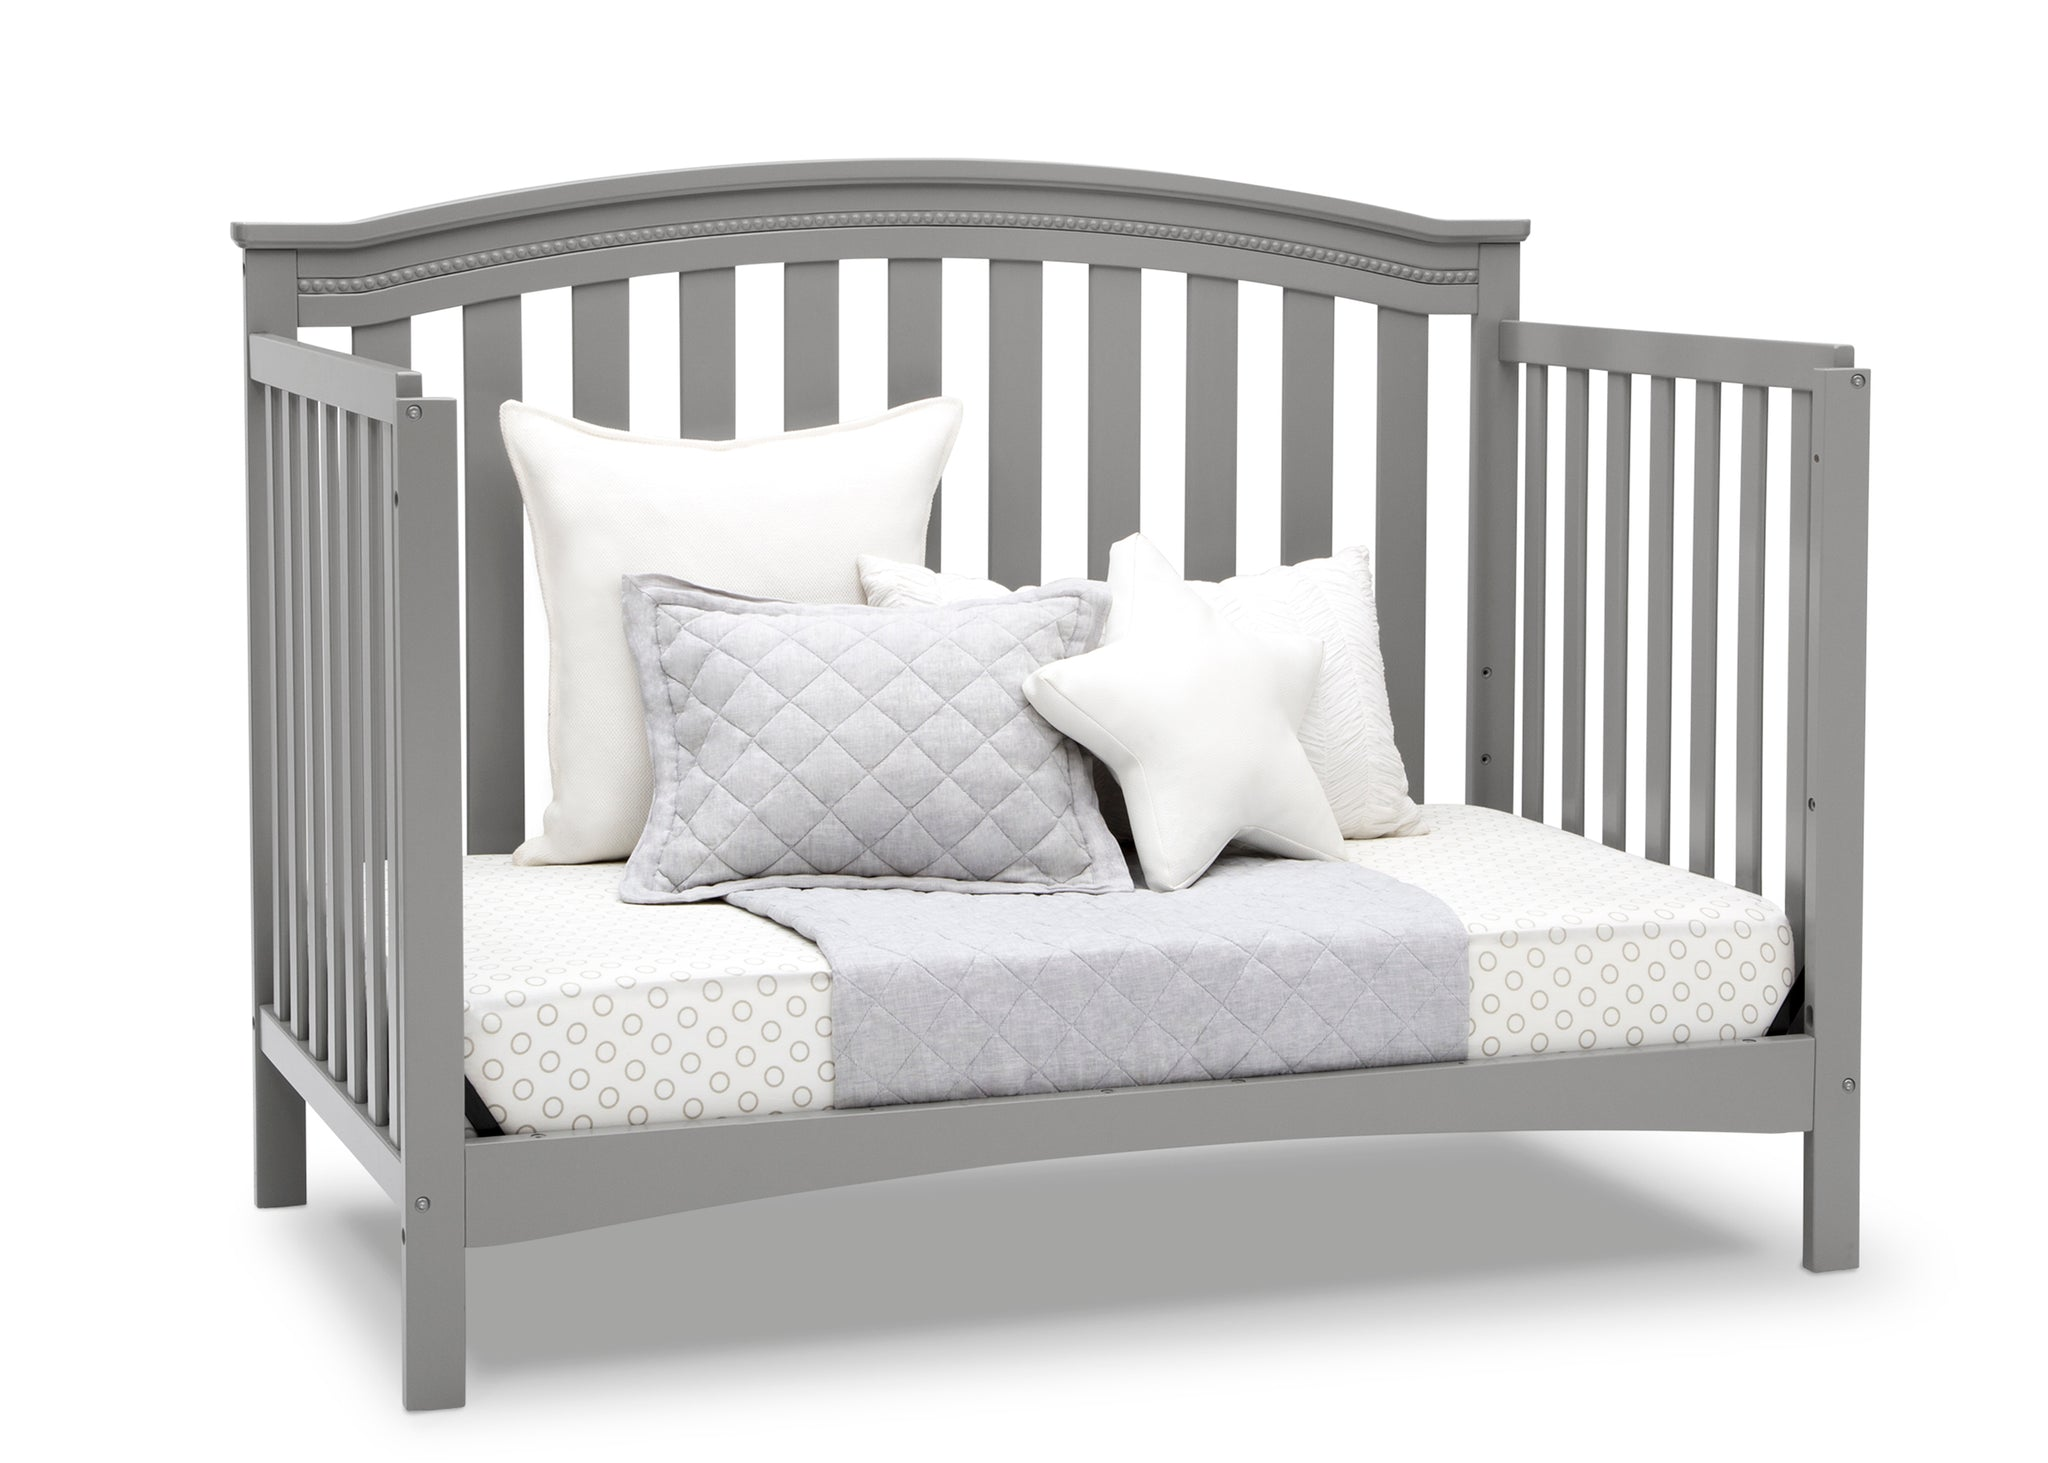 Delta Children Grey (026) Waverly 6-in-1 Convertible Crib, Right Day Bed Silo View